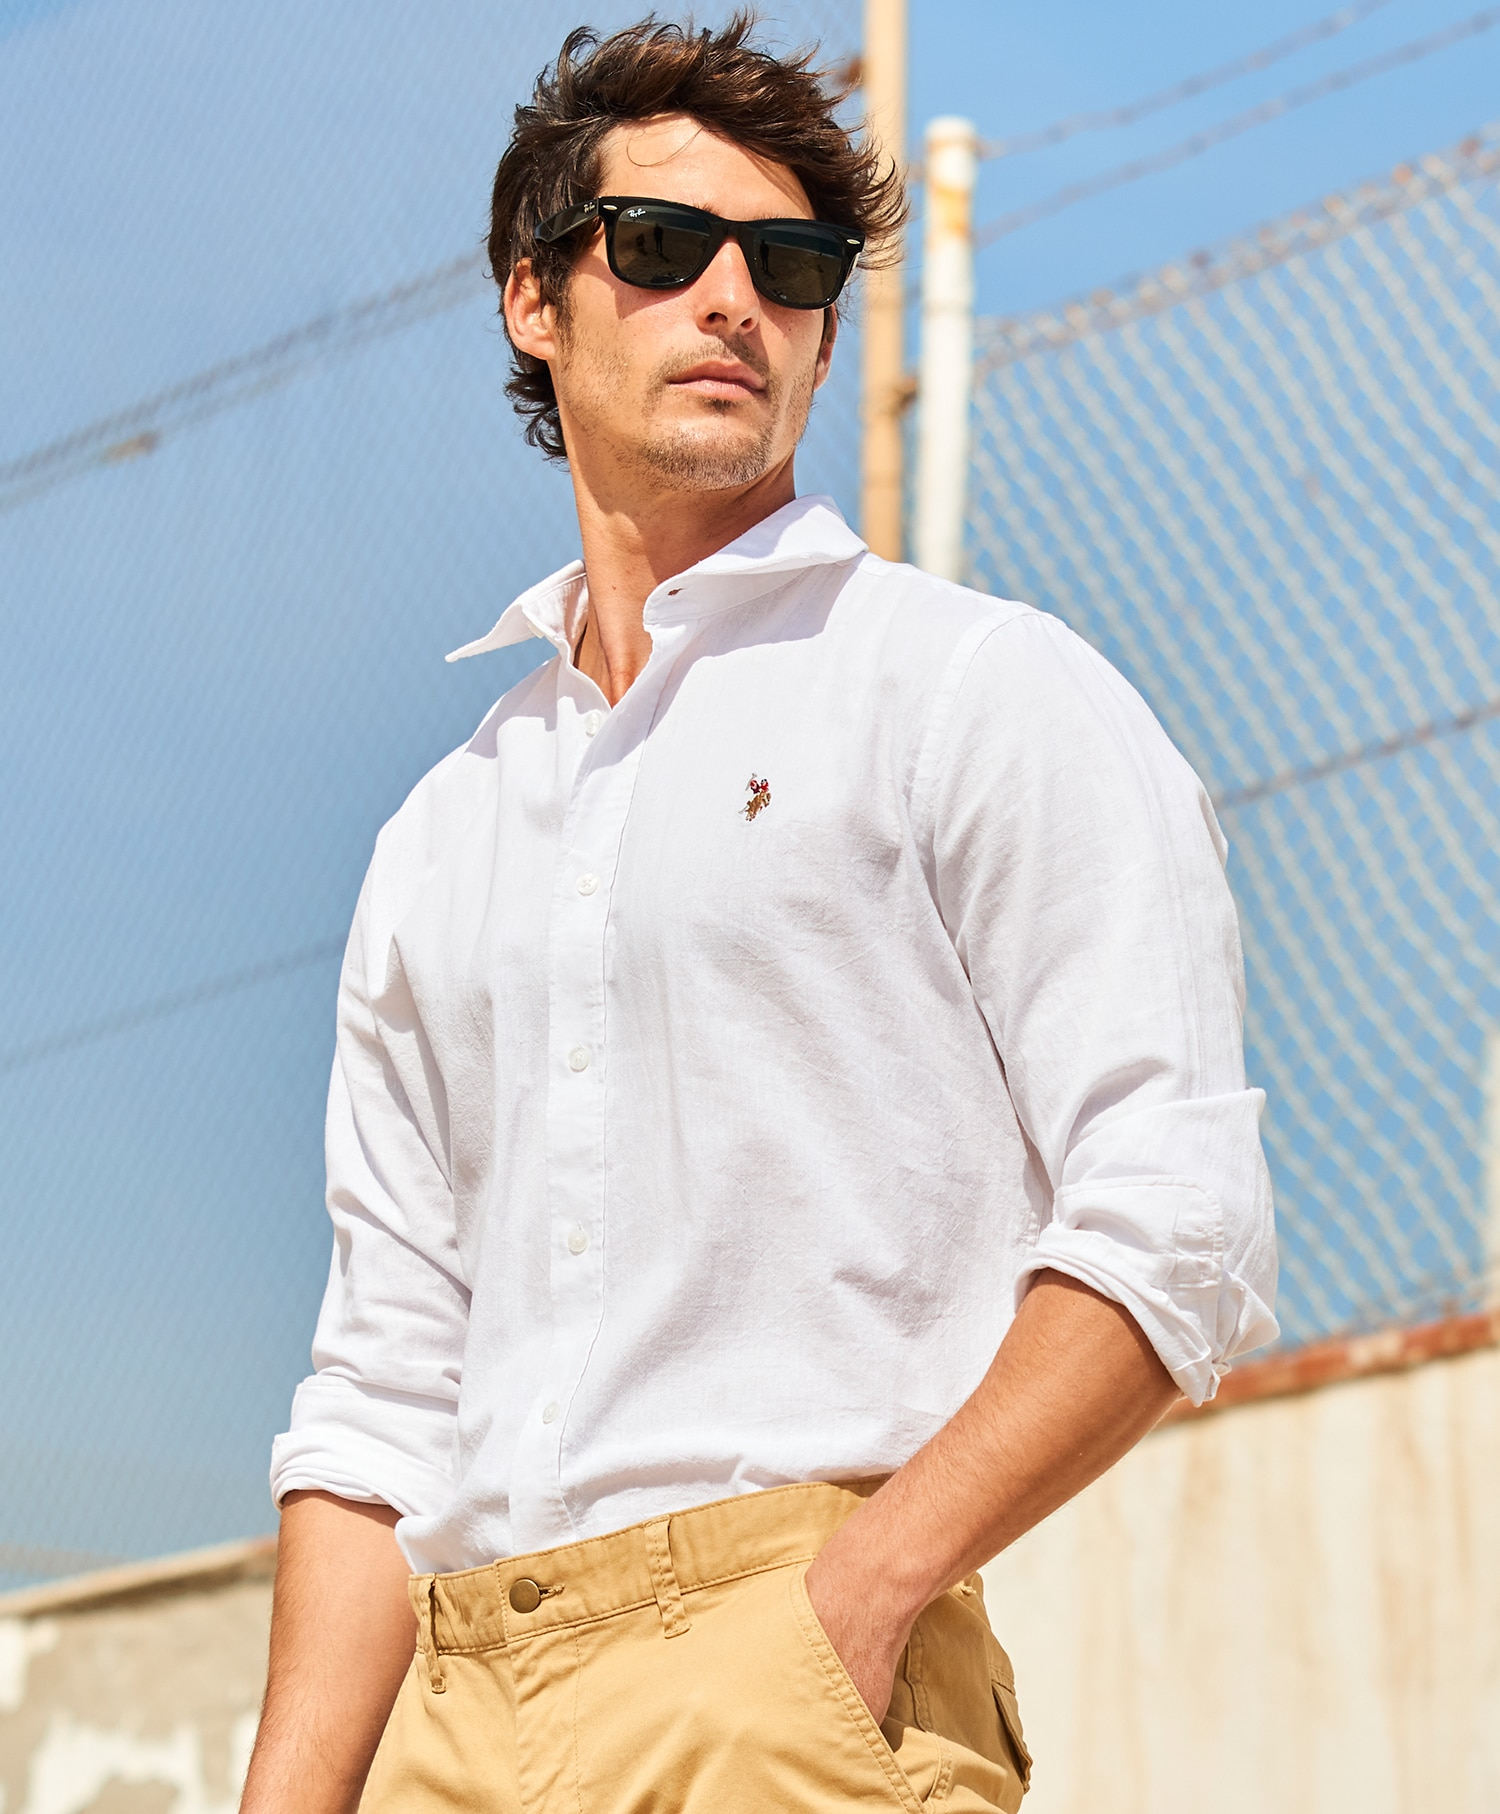 U.S Polo Bolt Shirt